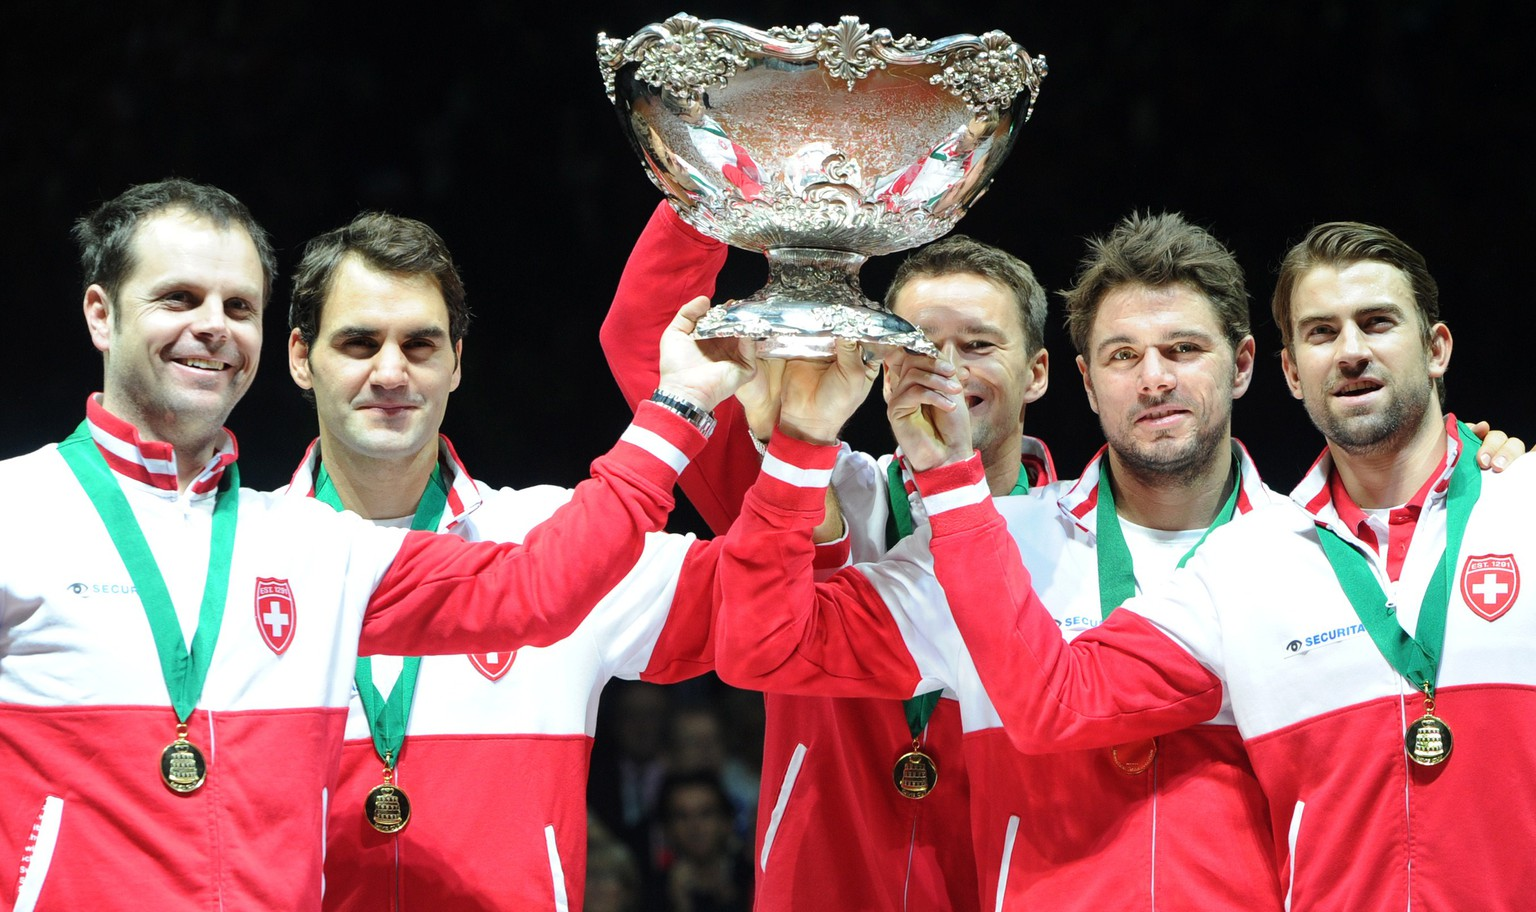 (L-R) Switzerland's Davis Cup team captain Severin Luthi and tennis players Roger Federer, Stanislas Wawrinka, Marco Chiudinelli and Michael Lammer celebrate with the trophy after winning the Davis Cup final between France and Switzerland at Stade Pierre Mauroy in Villeneuve-d'Ascq, northern France, on November 23, 2014. Roger Federer gave Switzerland its first Davis Cup title by defeating France's Richard Gasquet in straight sets in the first of the final's reverse singles.  AFP PHOTO / PHILIPPE HUGUEN